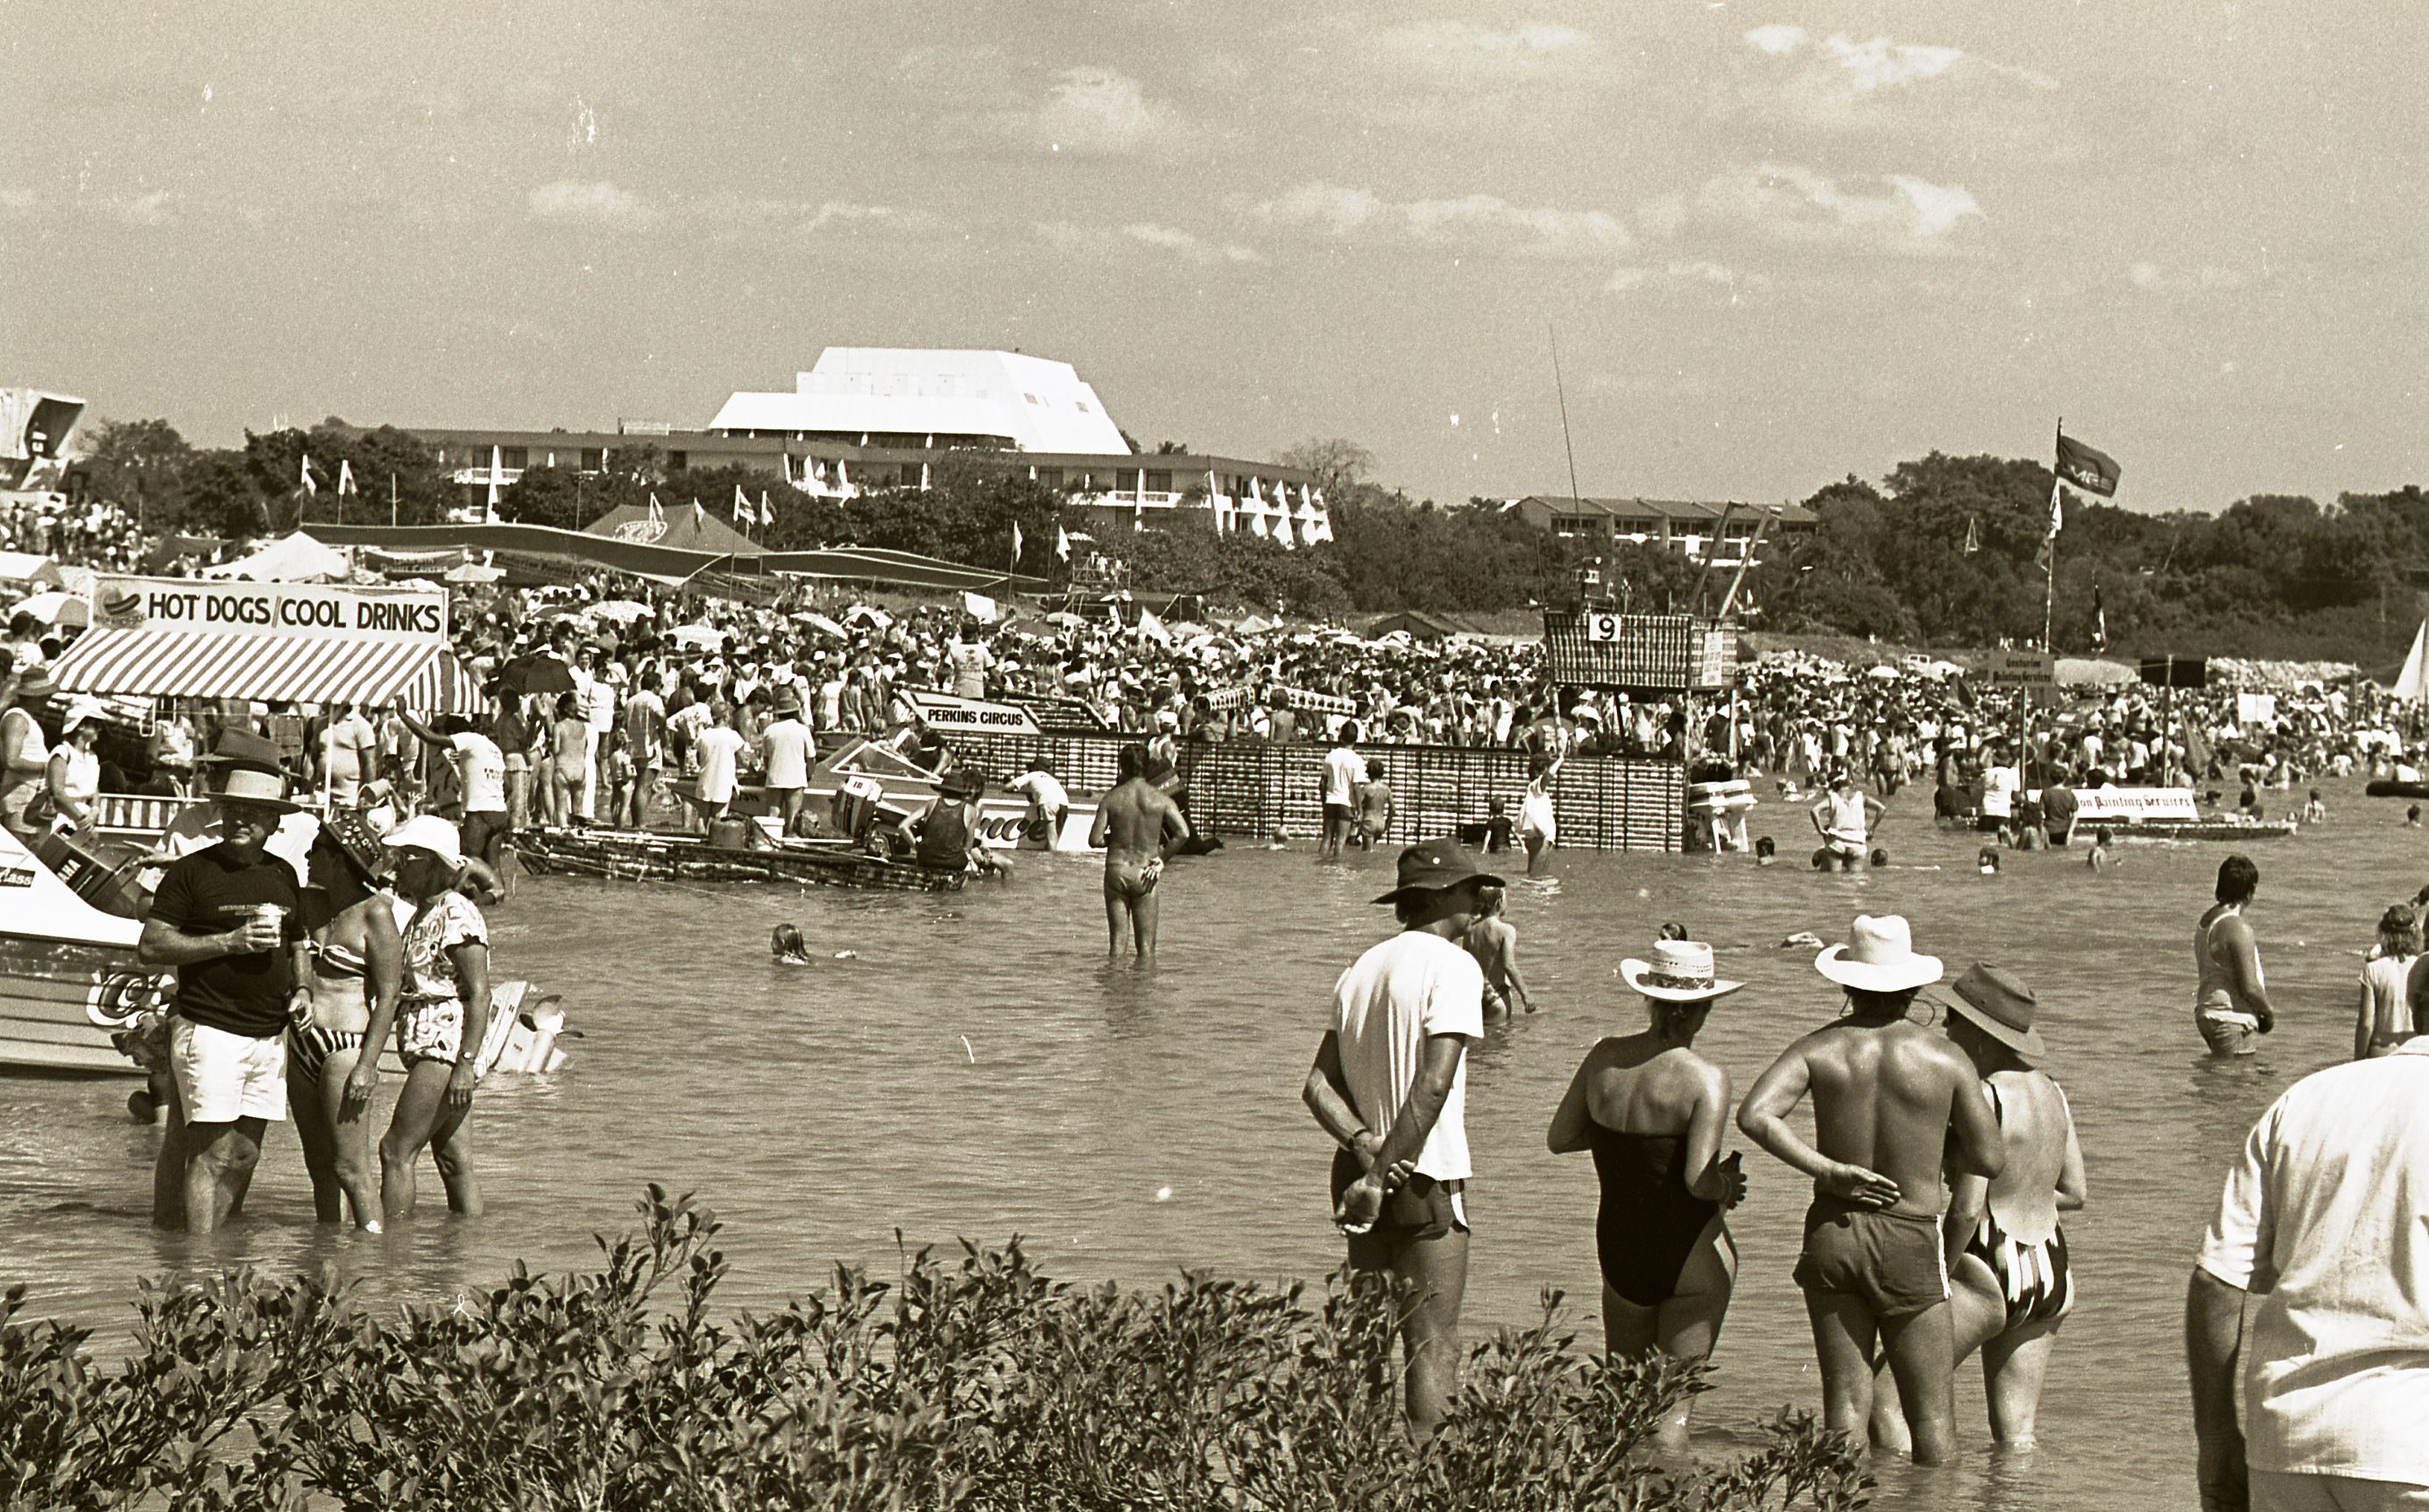 [Beer Can Regatta, 7 June 1987] <br />Image courtesy of Northern Territory Archives Service, Department of Chief Minister, NTRS 3823, Item BW2637, 5.